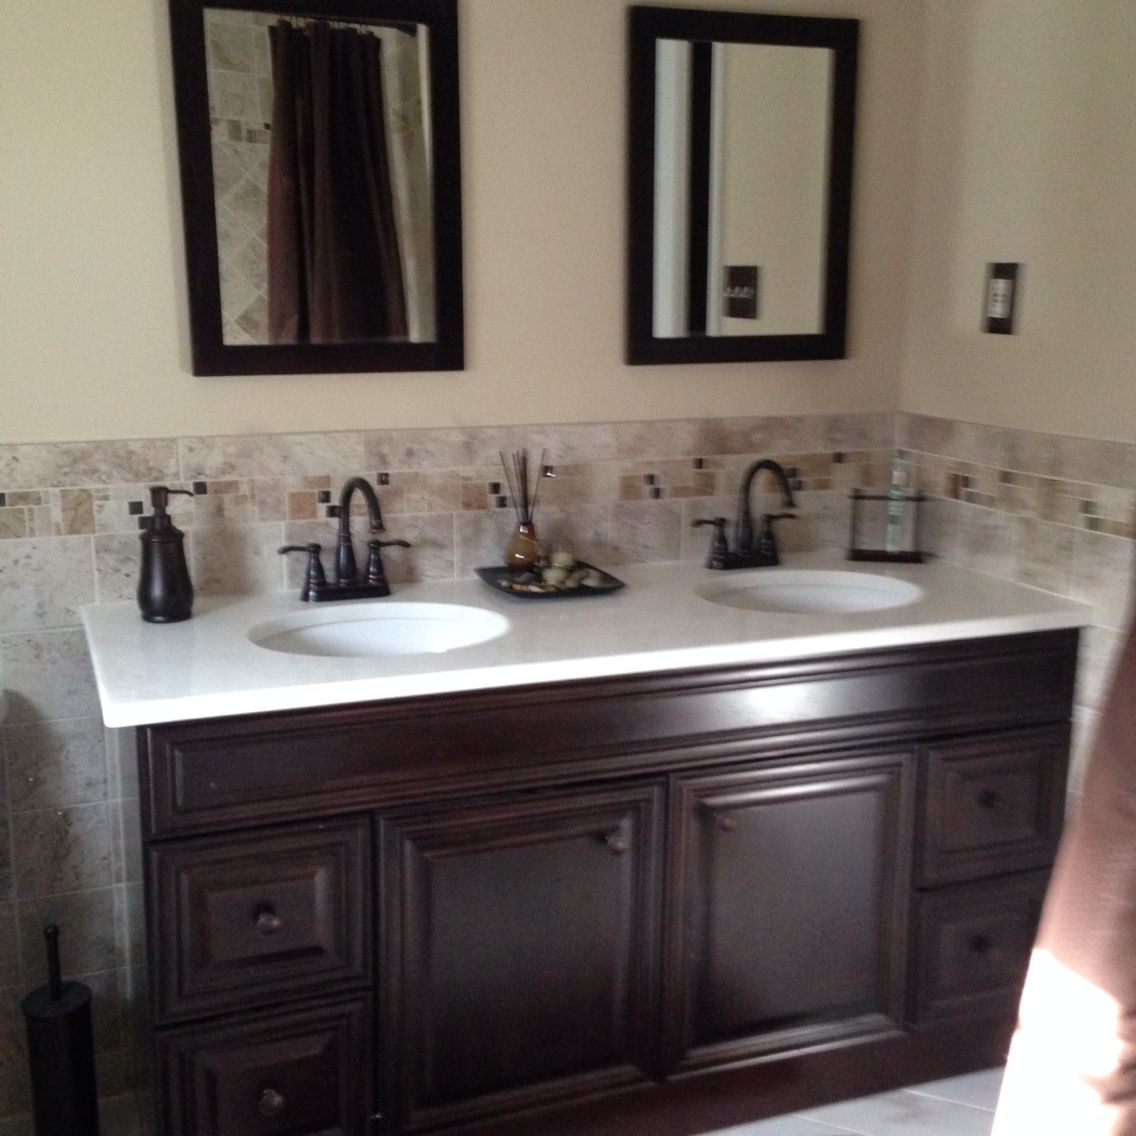 Bathroom Lights Manchester remodeled bathroom. manchester tan paint on walls. cabinet and